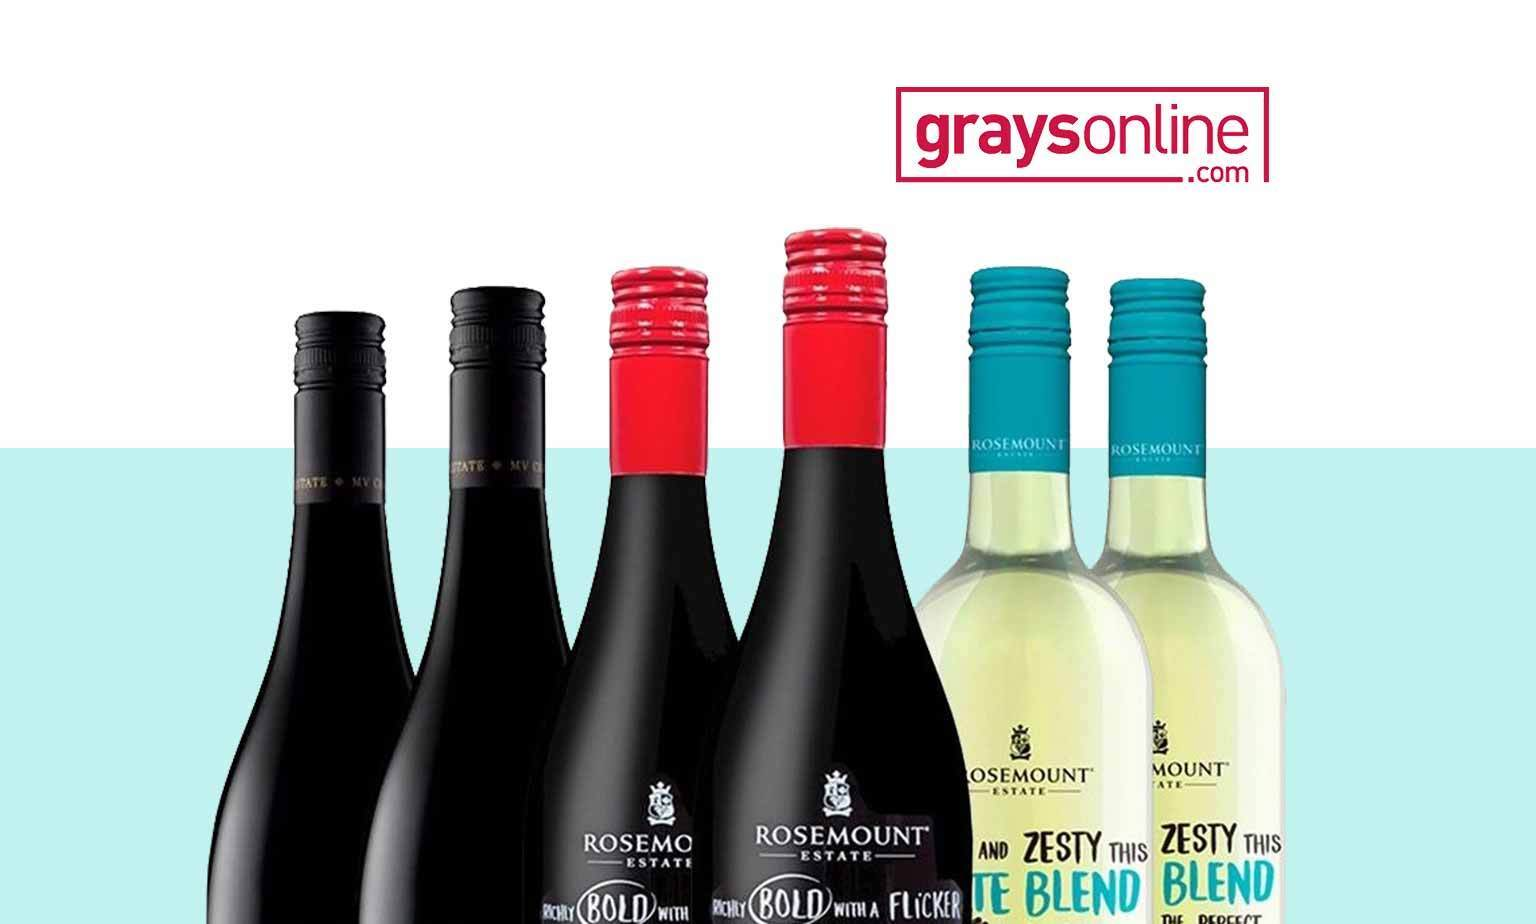 20% off at Graysonline*